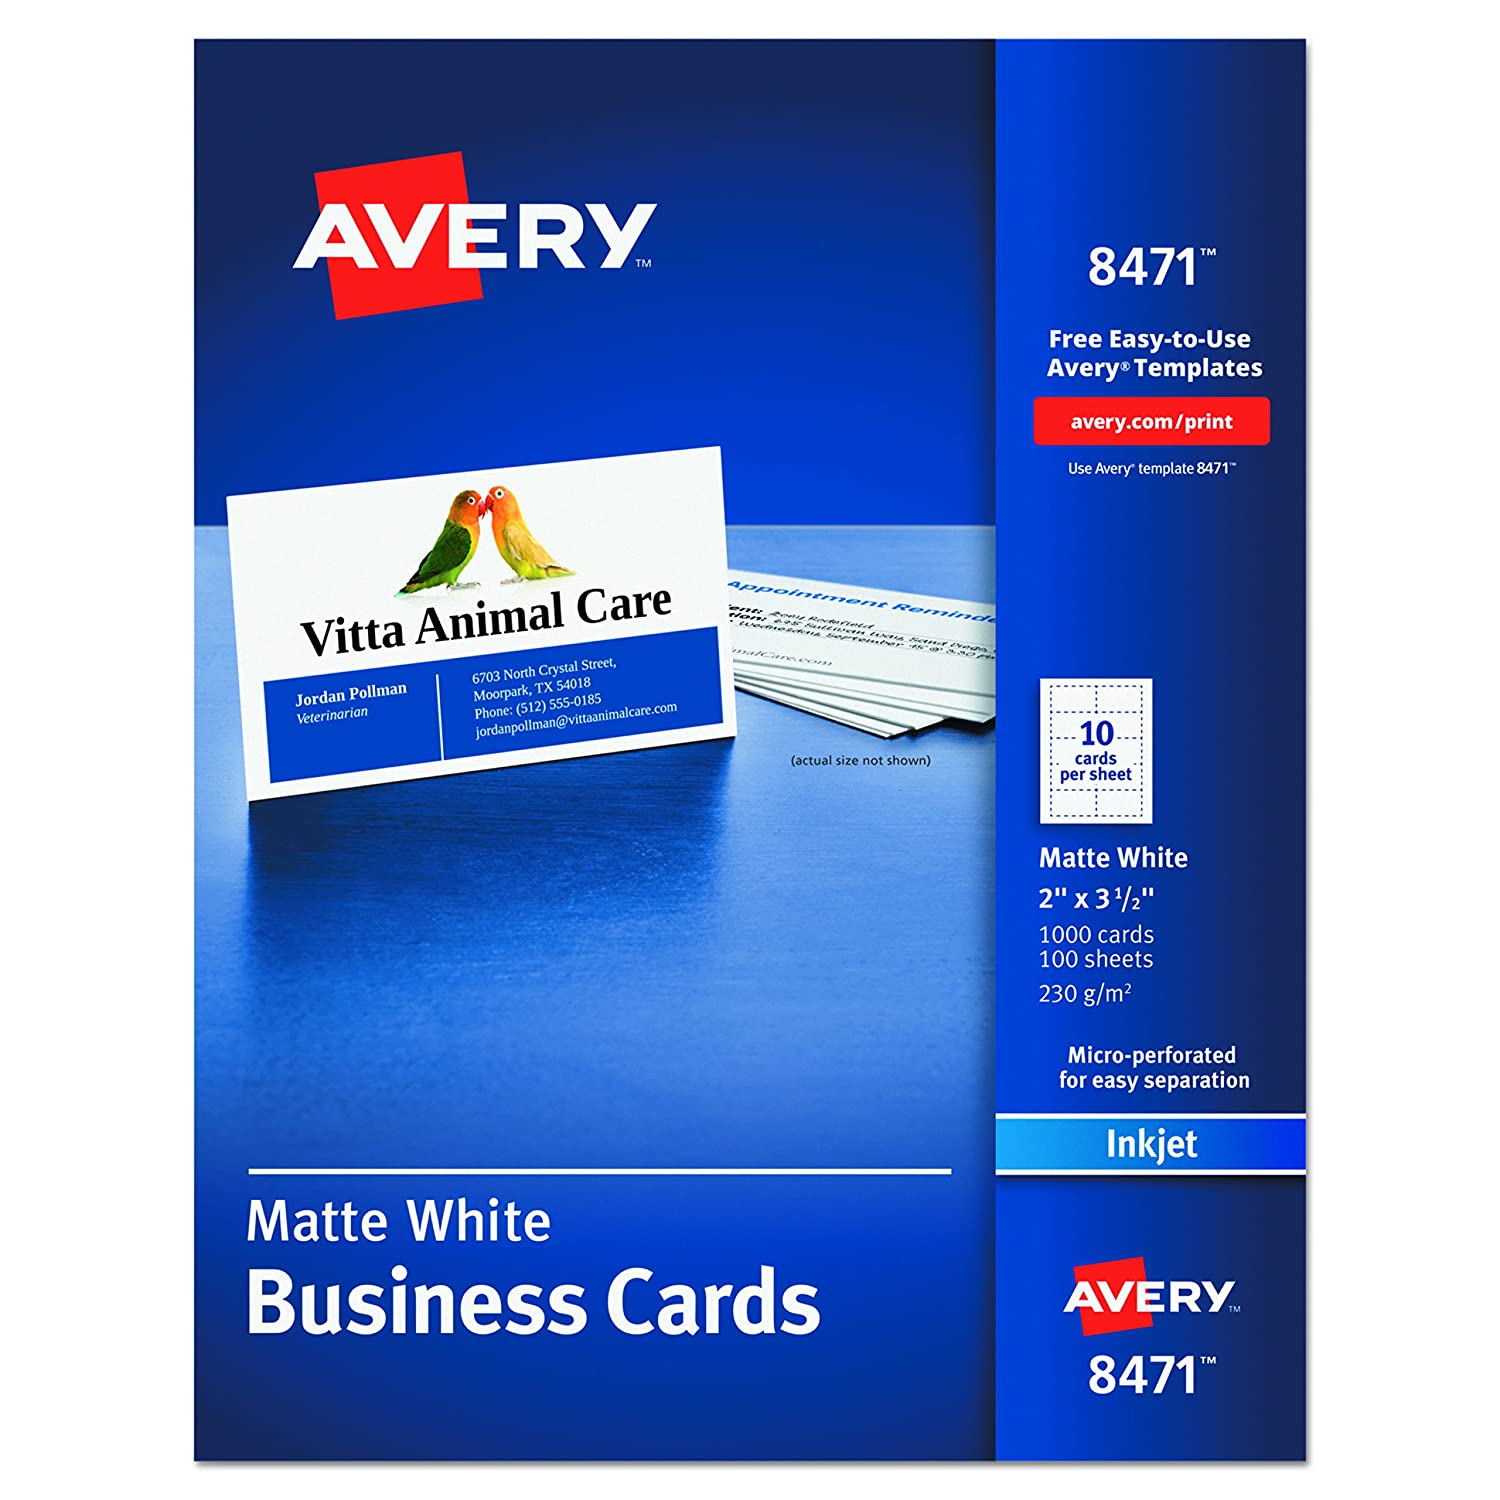 Amazon.com : Avery 8471 Printable Microperf Business Cards, Inkjet ...